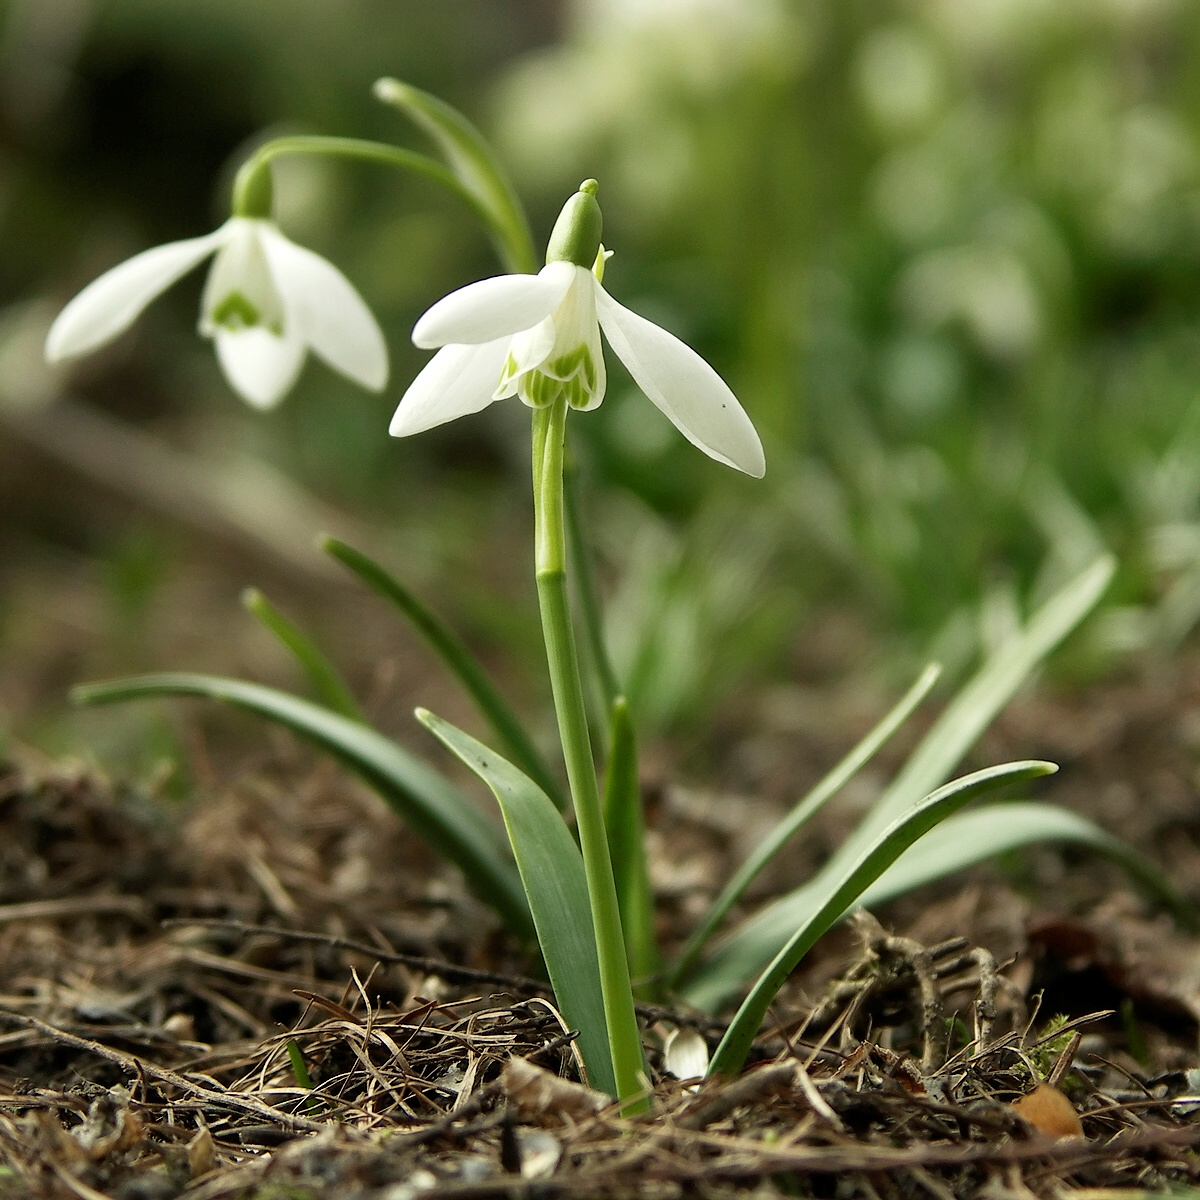 Galanthus - Wikipedia, the free encyclopedia